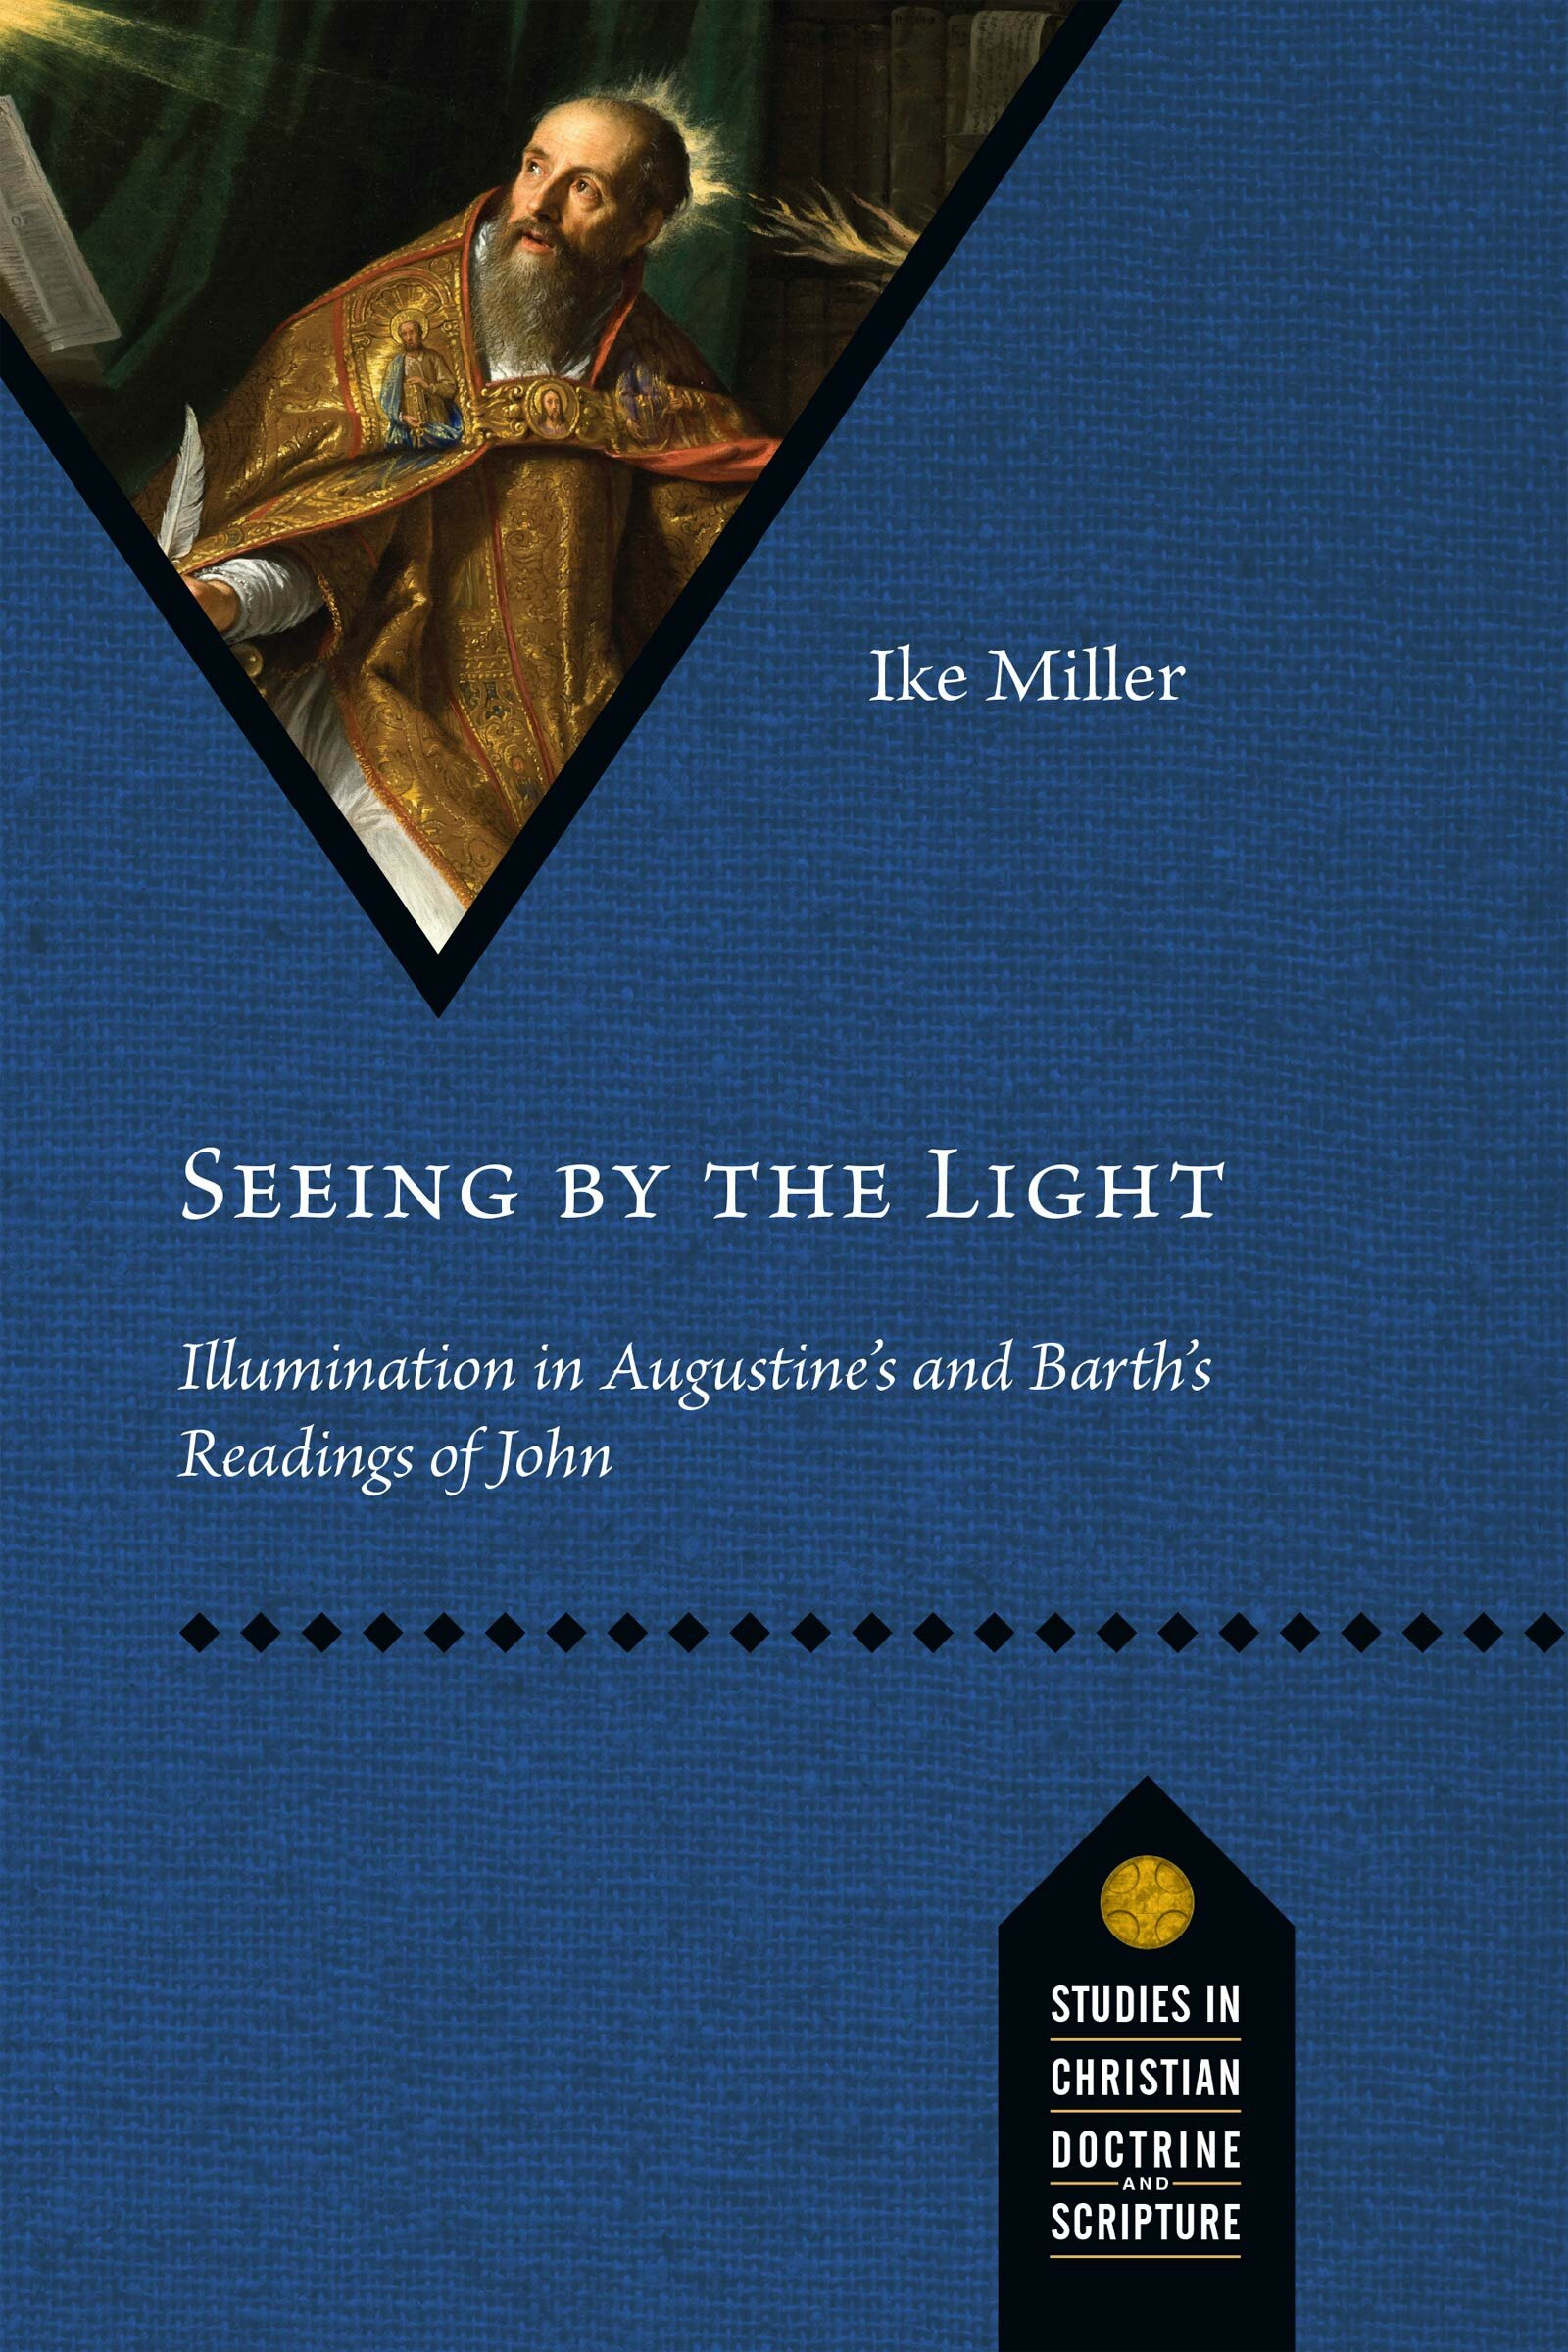 Seeing by the Light: Illumination in Augustine's and Barth's Readings of John (Studies in Christian Doctrine and Scripture)